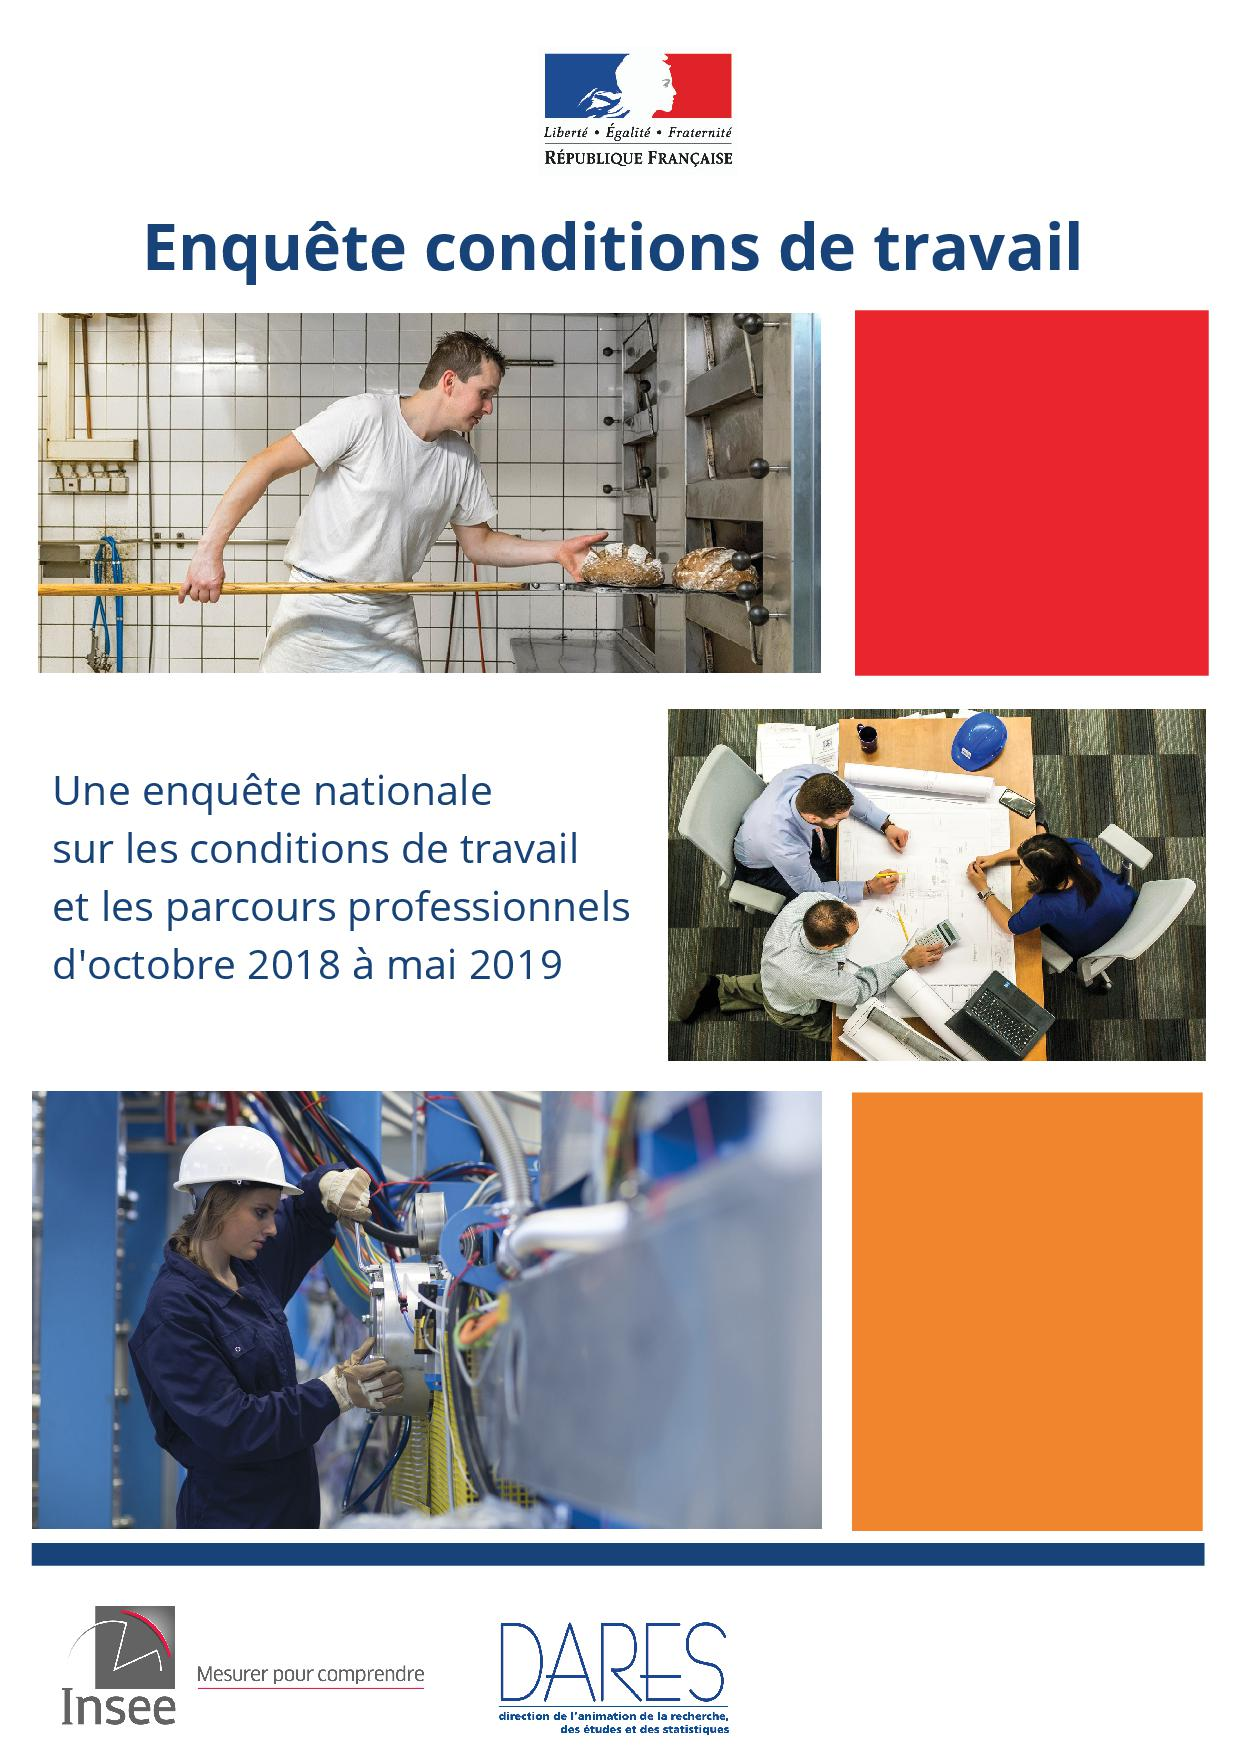 affiche enquete INSEE conditions de travail